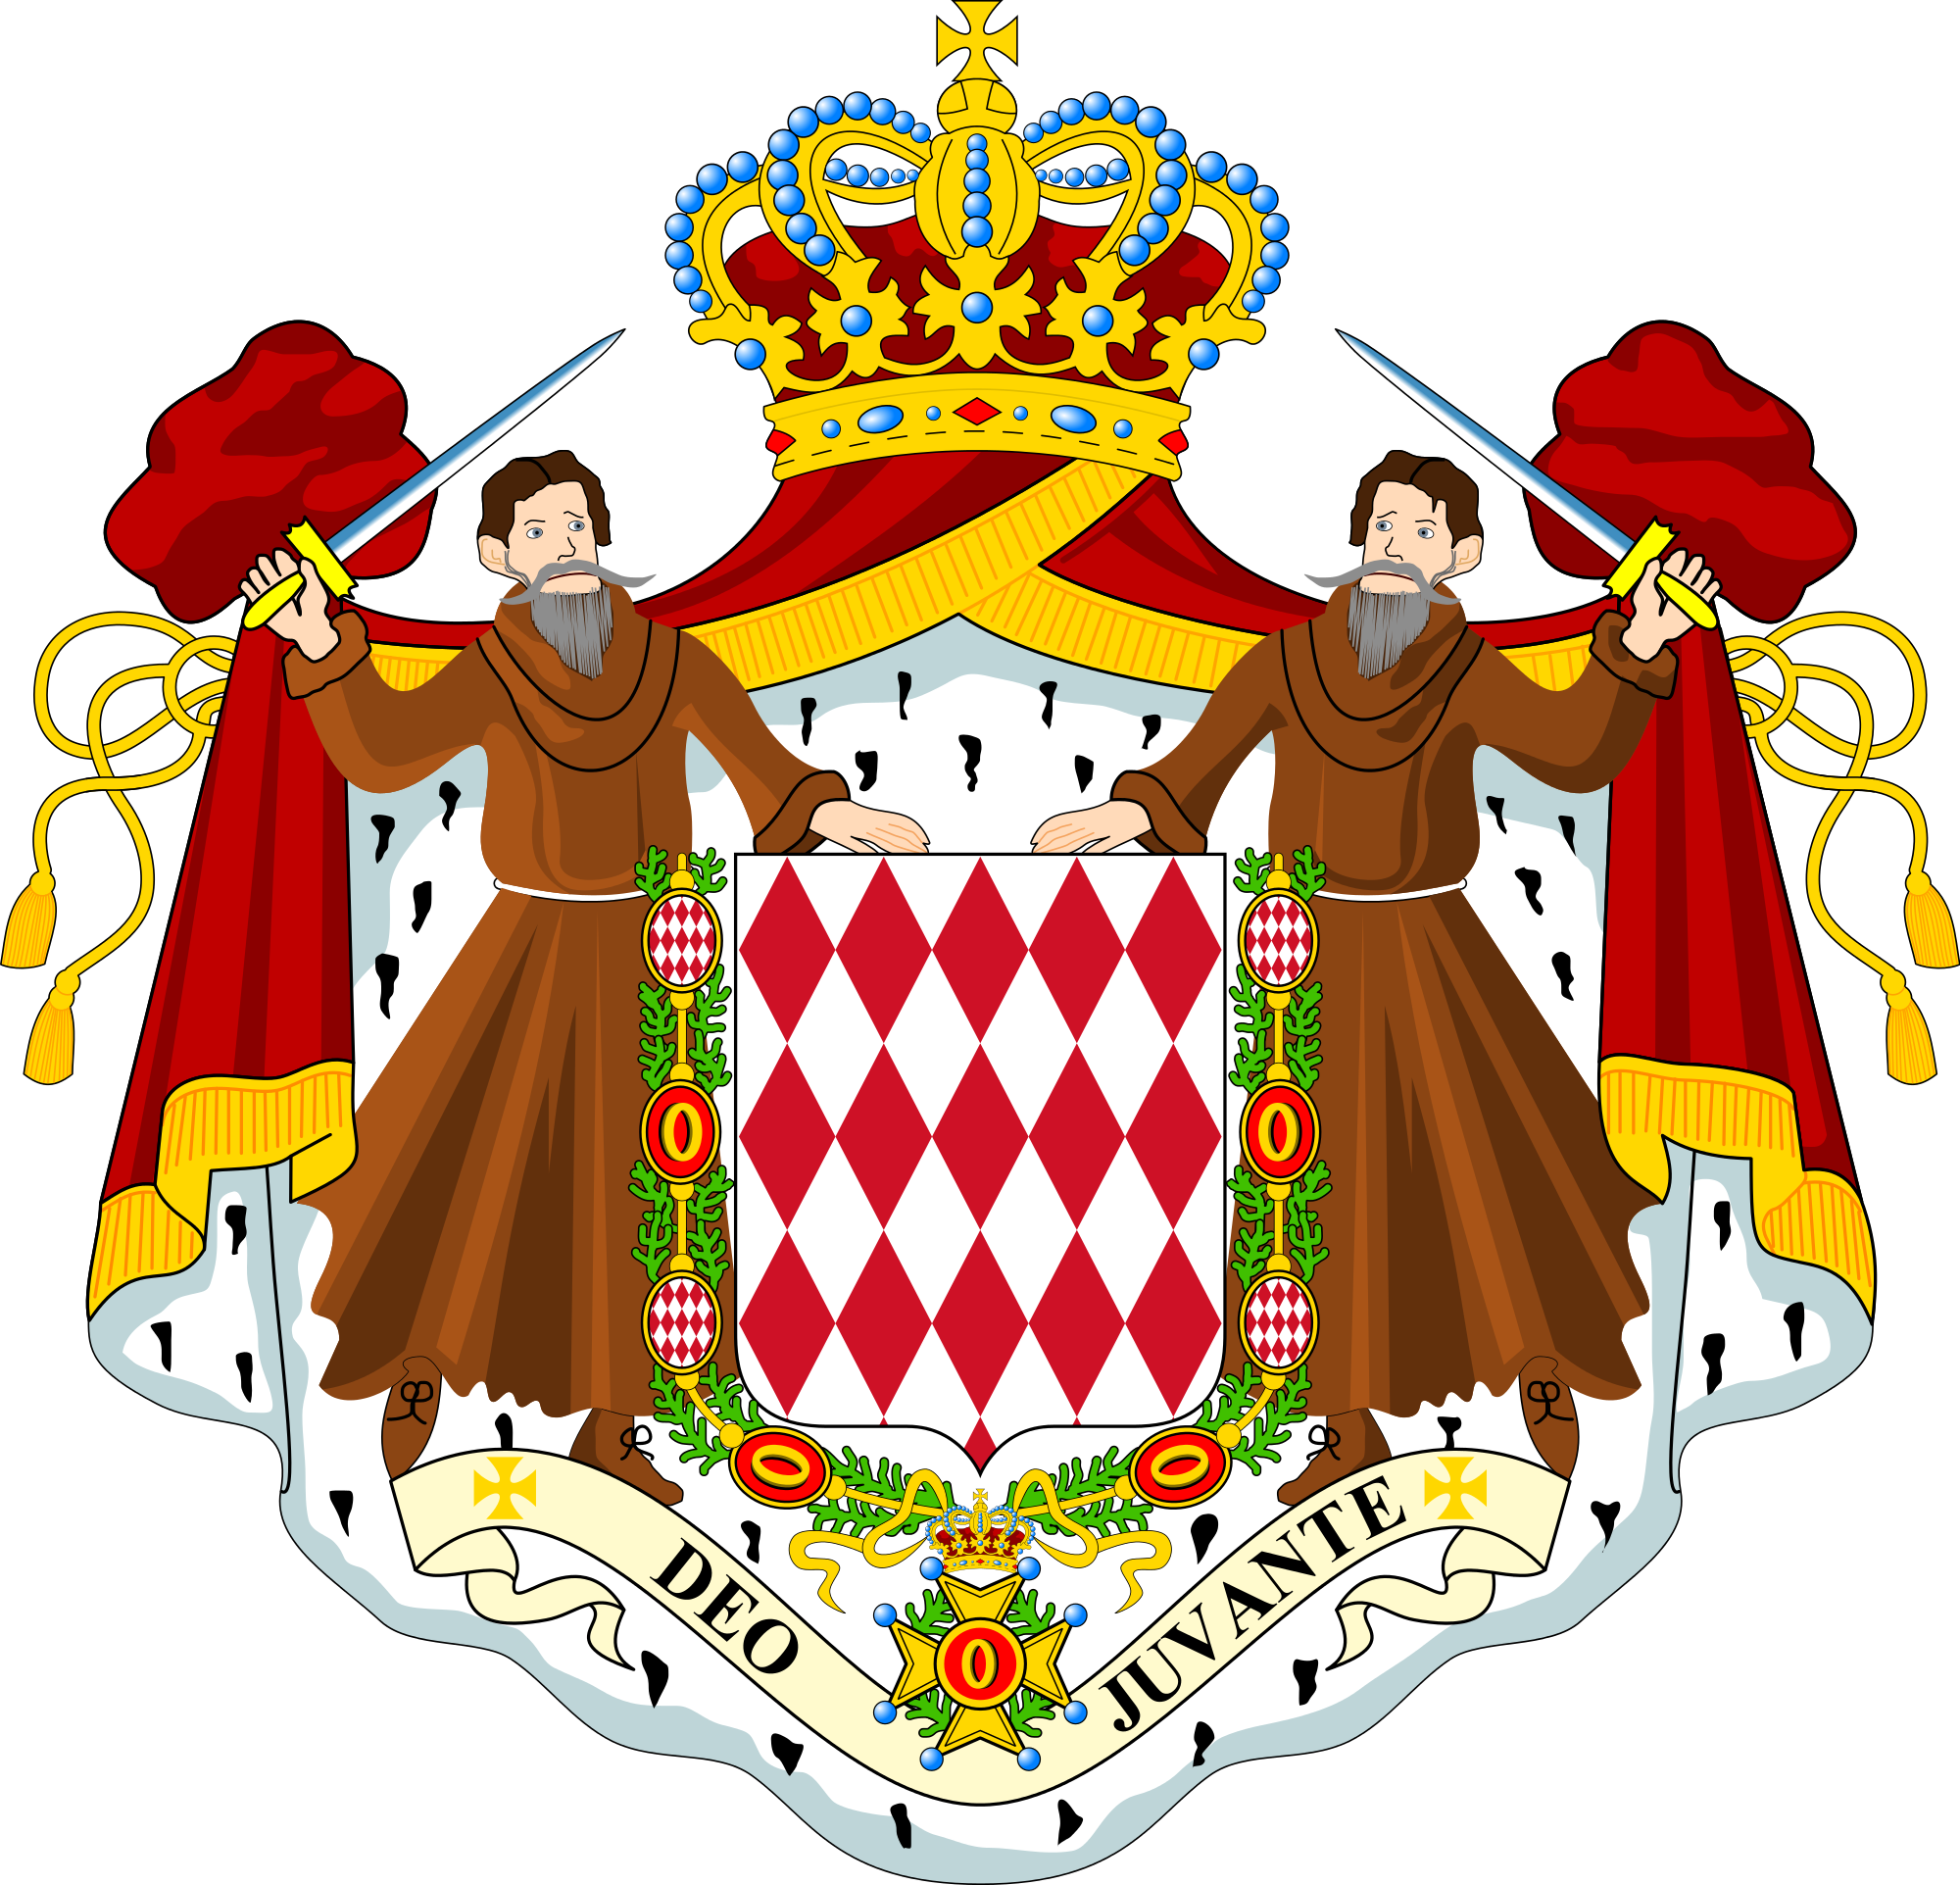 File:Coat of arms of Monaco.svg.